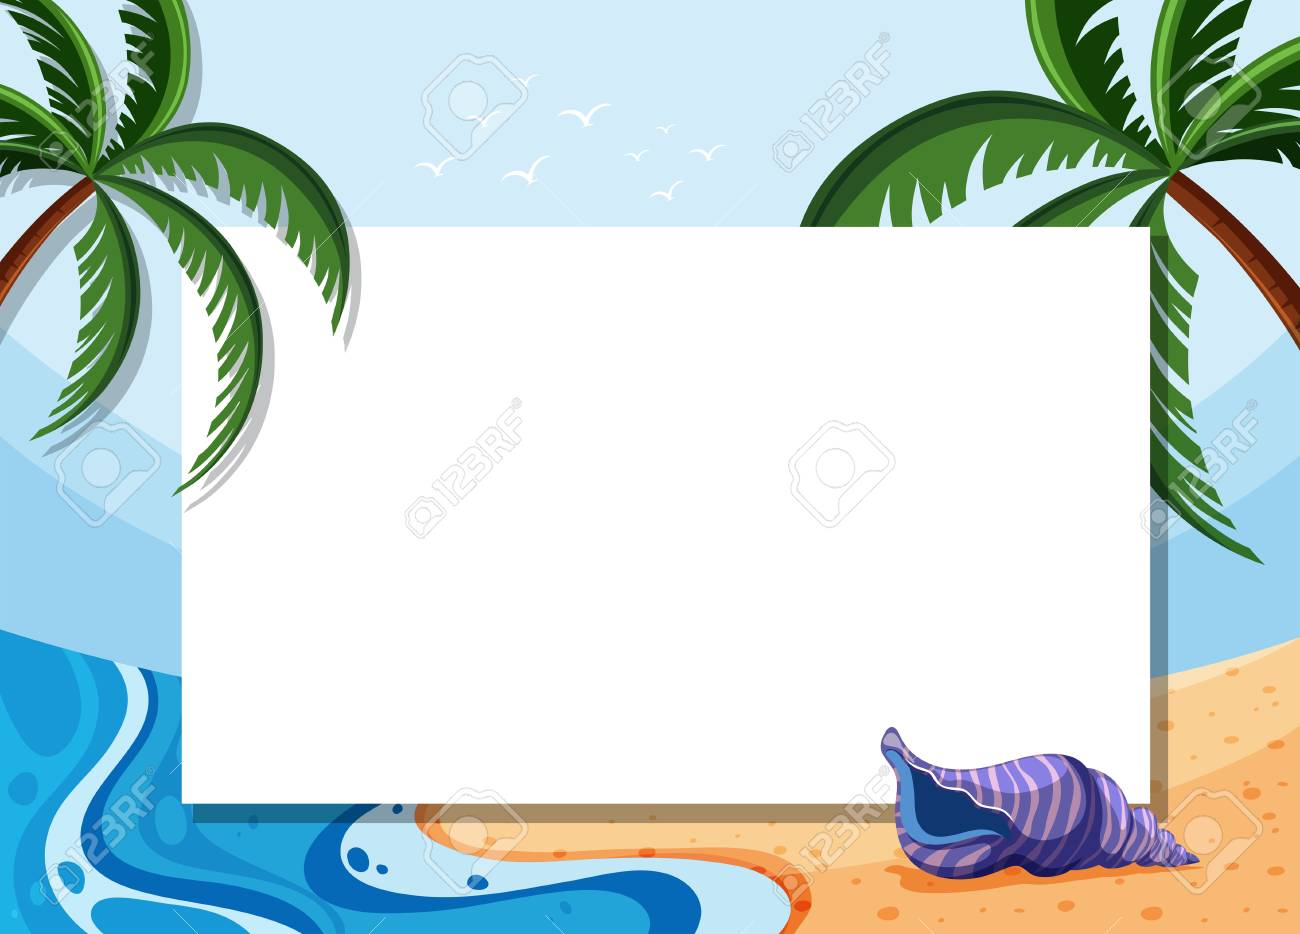 border template with coconut trees and shell on beach illustration